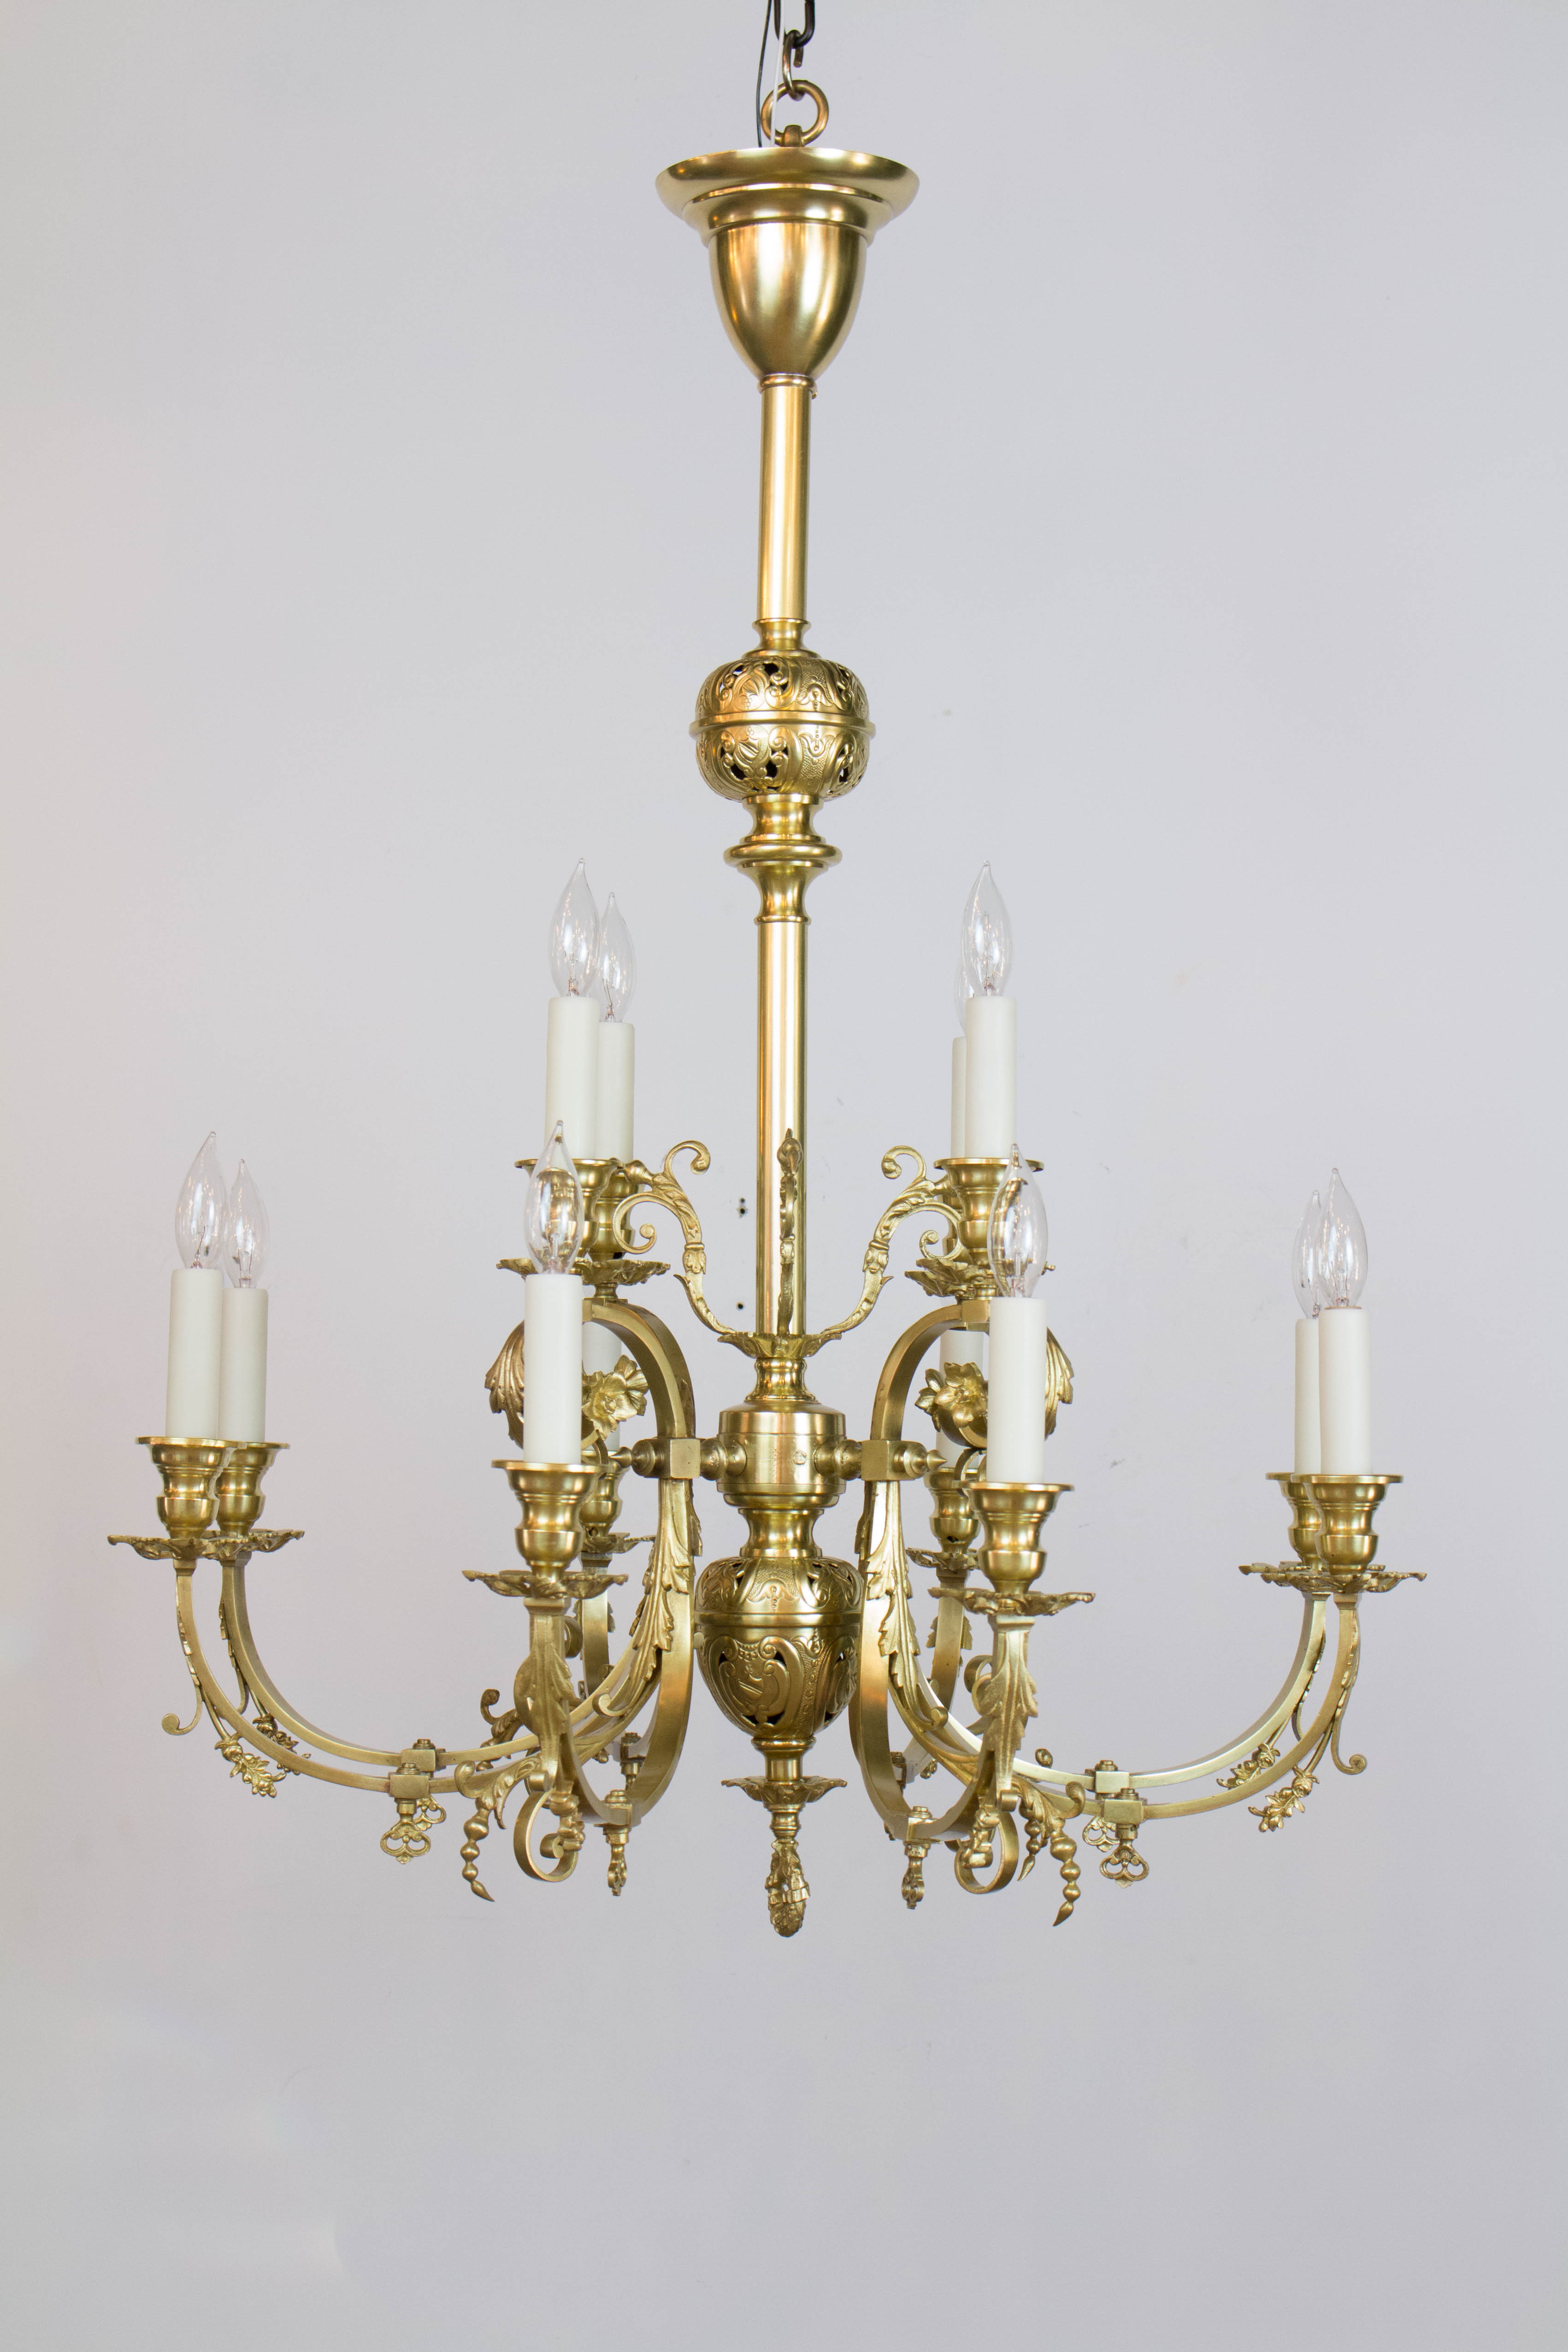 online aesthetic lamp ironchandeliers for shades along australia black in ceiling full lights watt idyllic hanging room cage vintage wrought lantern wire great of round starlight bulb chandeliers size iron industrial lowes stores ceilings light ritzy with lighting sale style beautiful crystal statement pendant chandelier